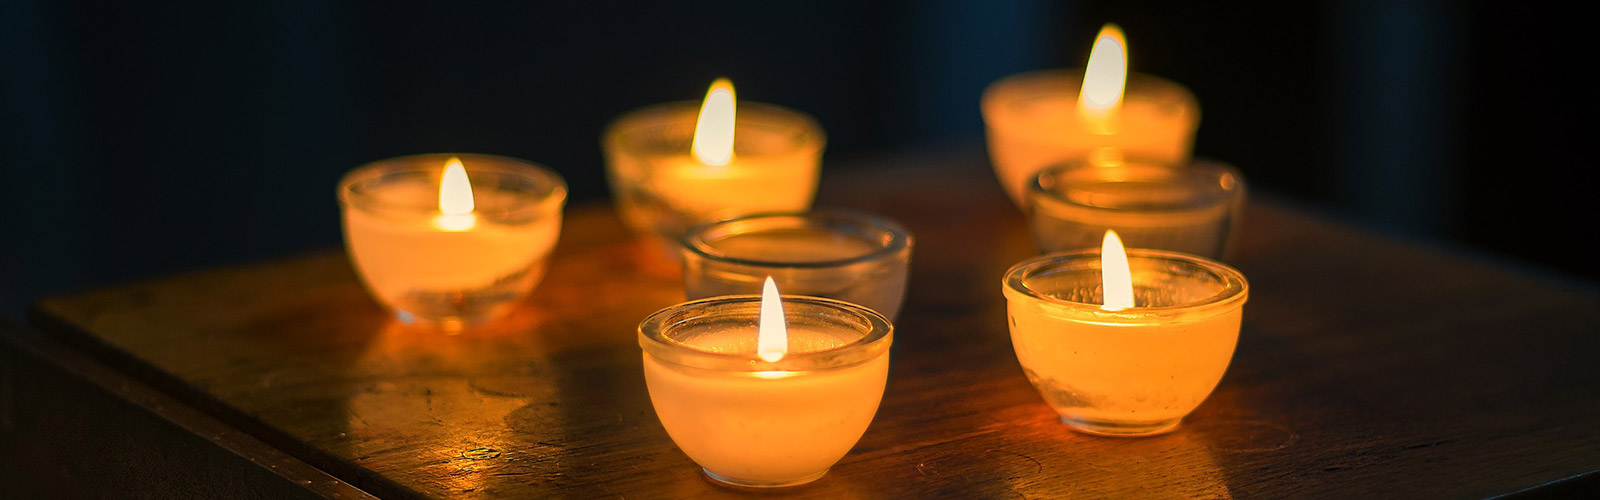 Group of sensual lit candles